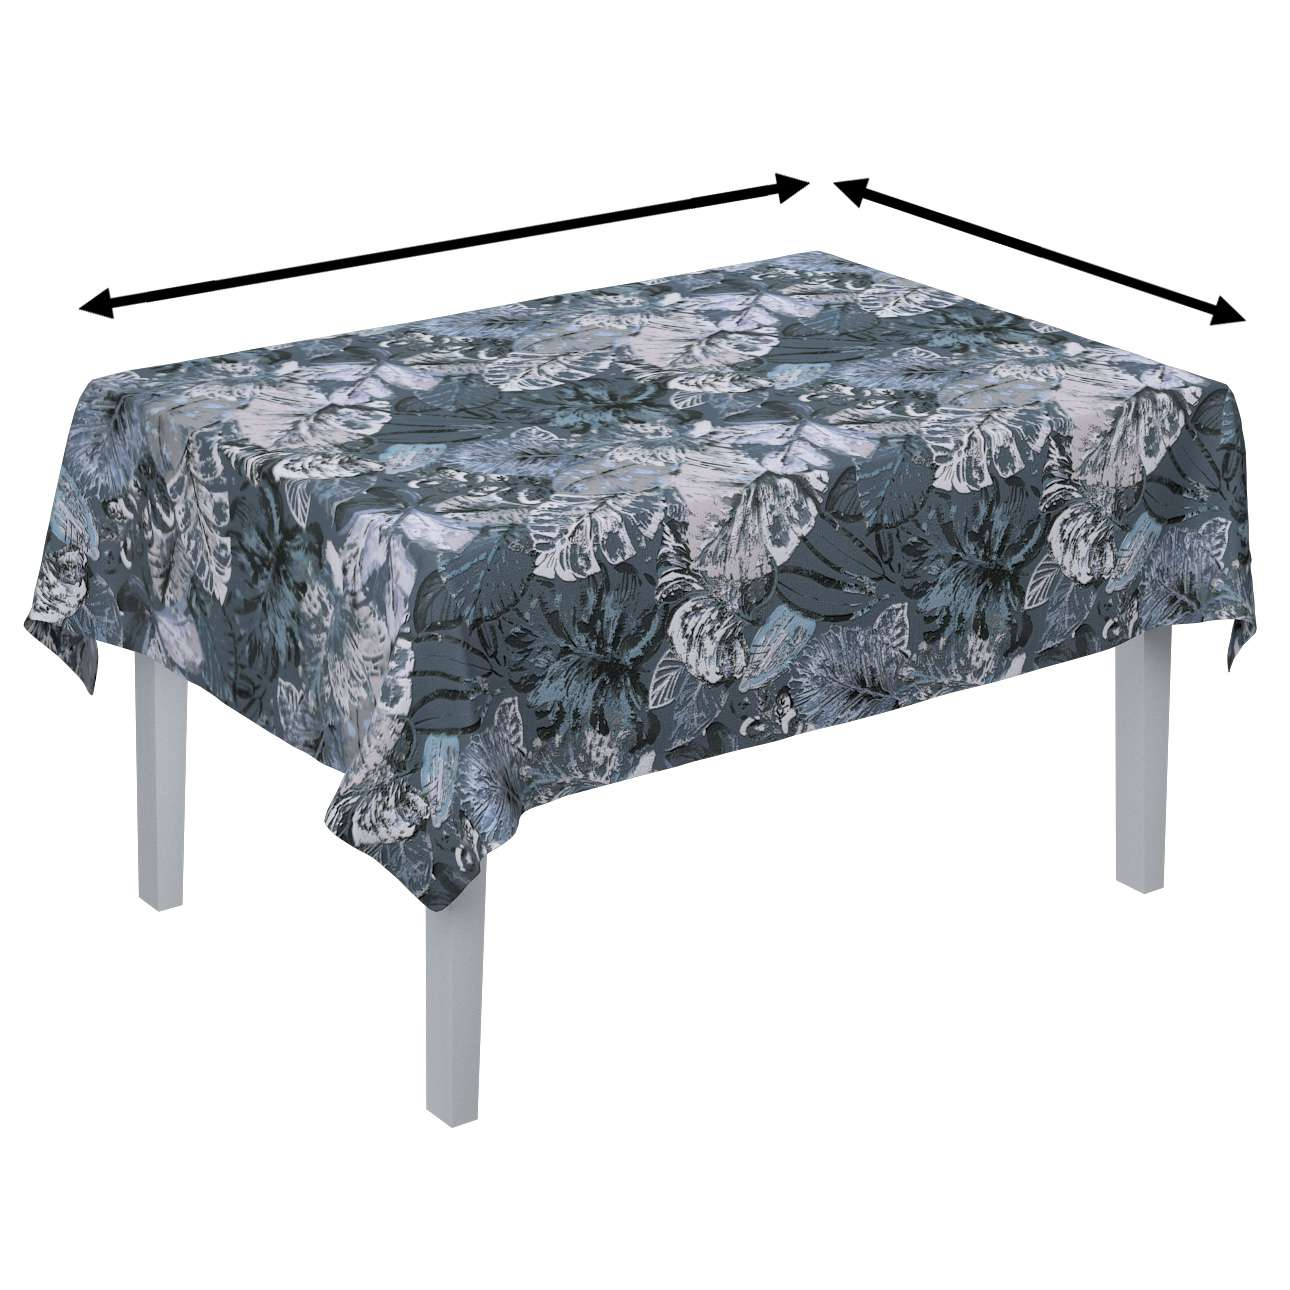 Rectangular tablecloth in collection Abigail, fabric: 143-18